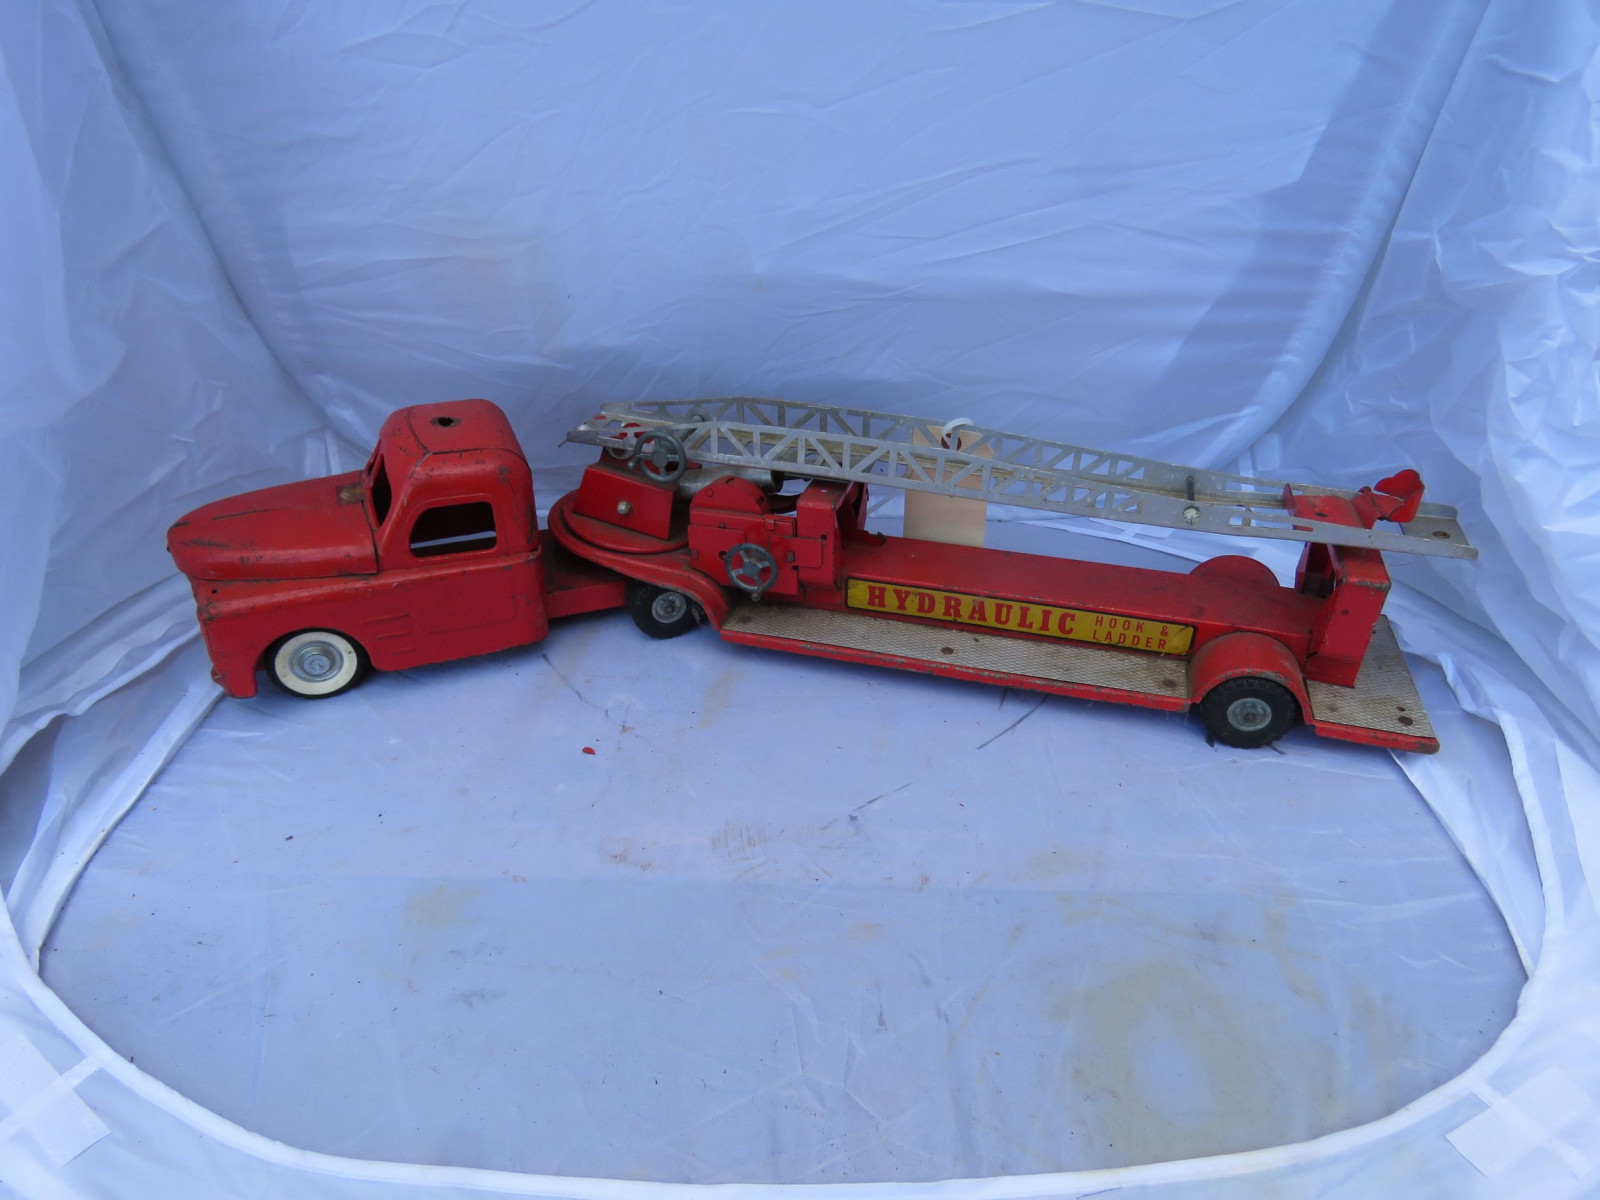 Structo Hook and Ladder Truck - Image 2